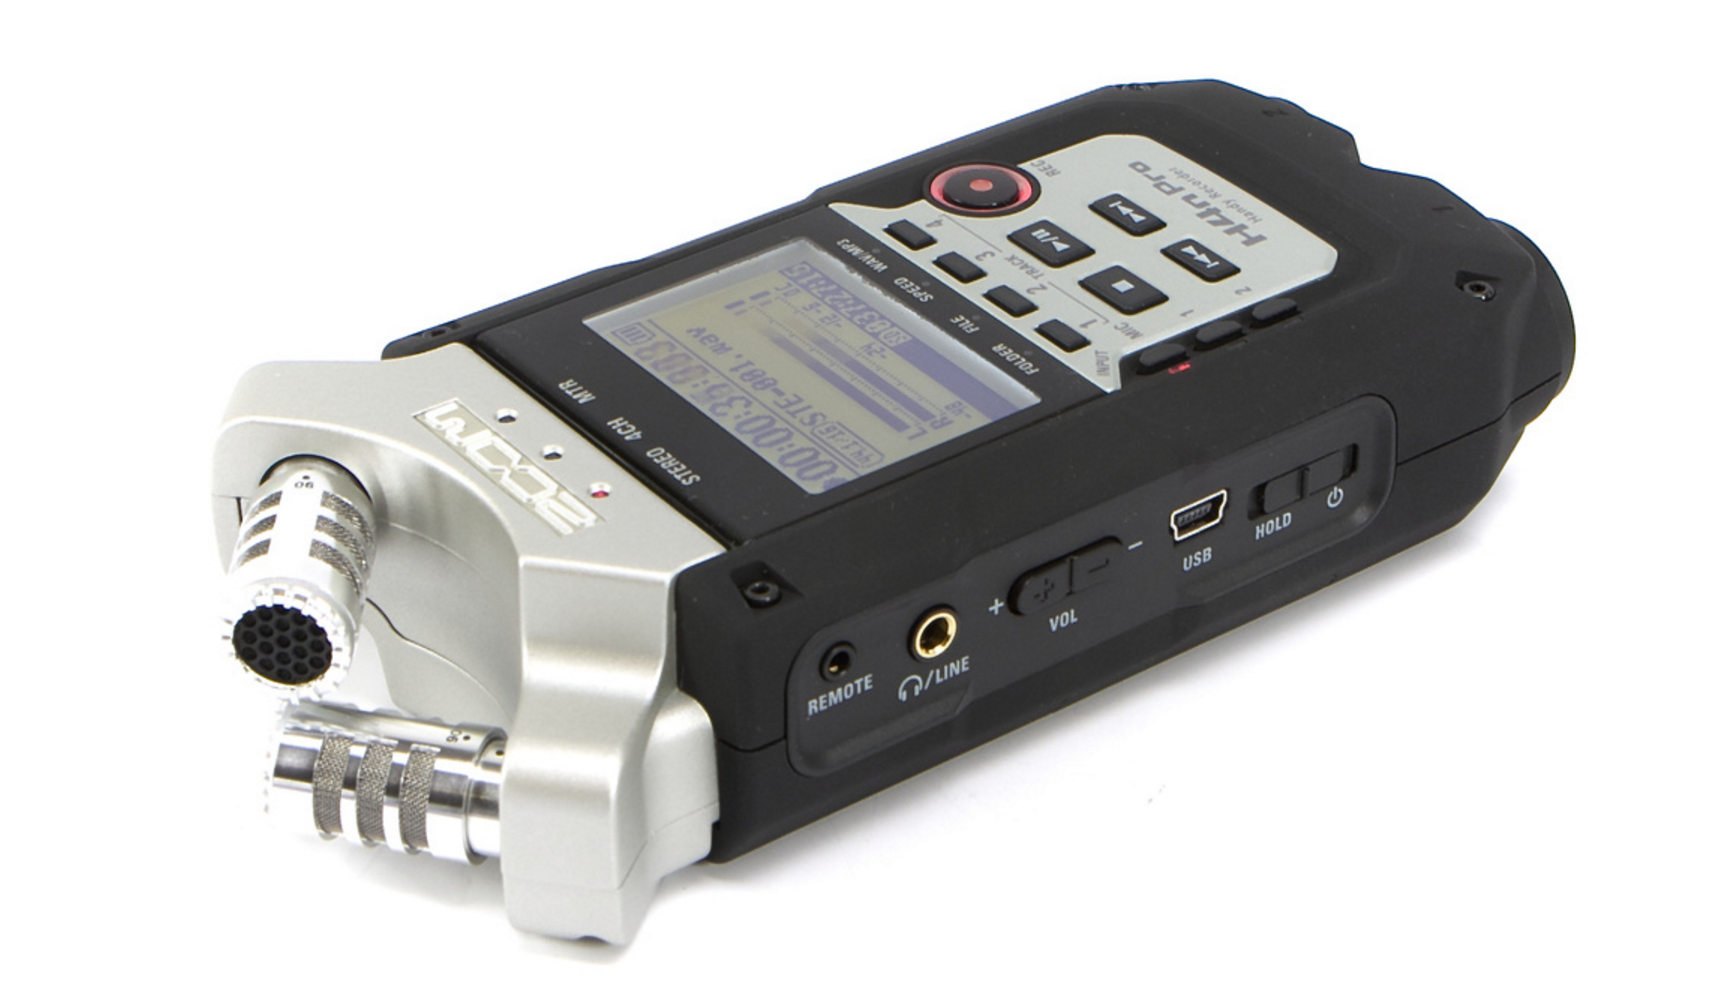 Zoom H4n Pro is more than simply an audio recorder | Best Buy Blog